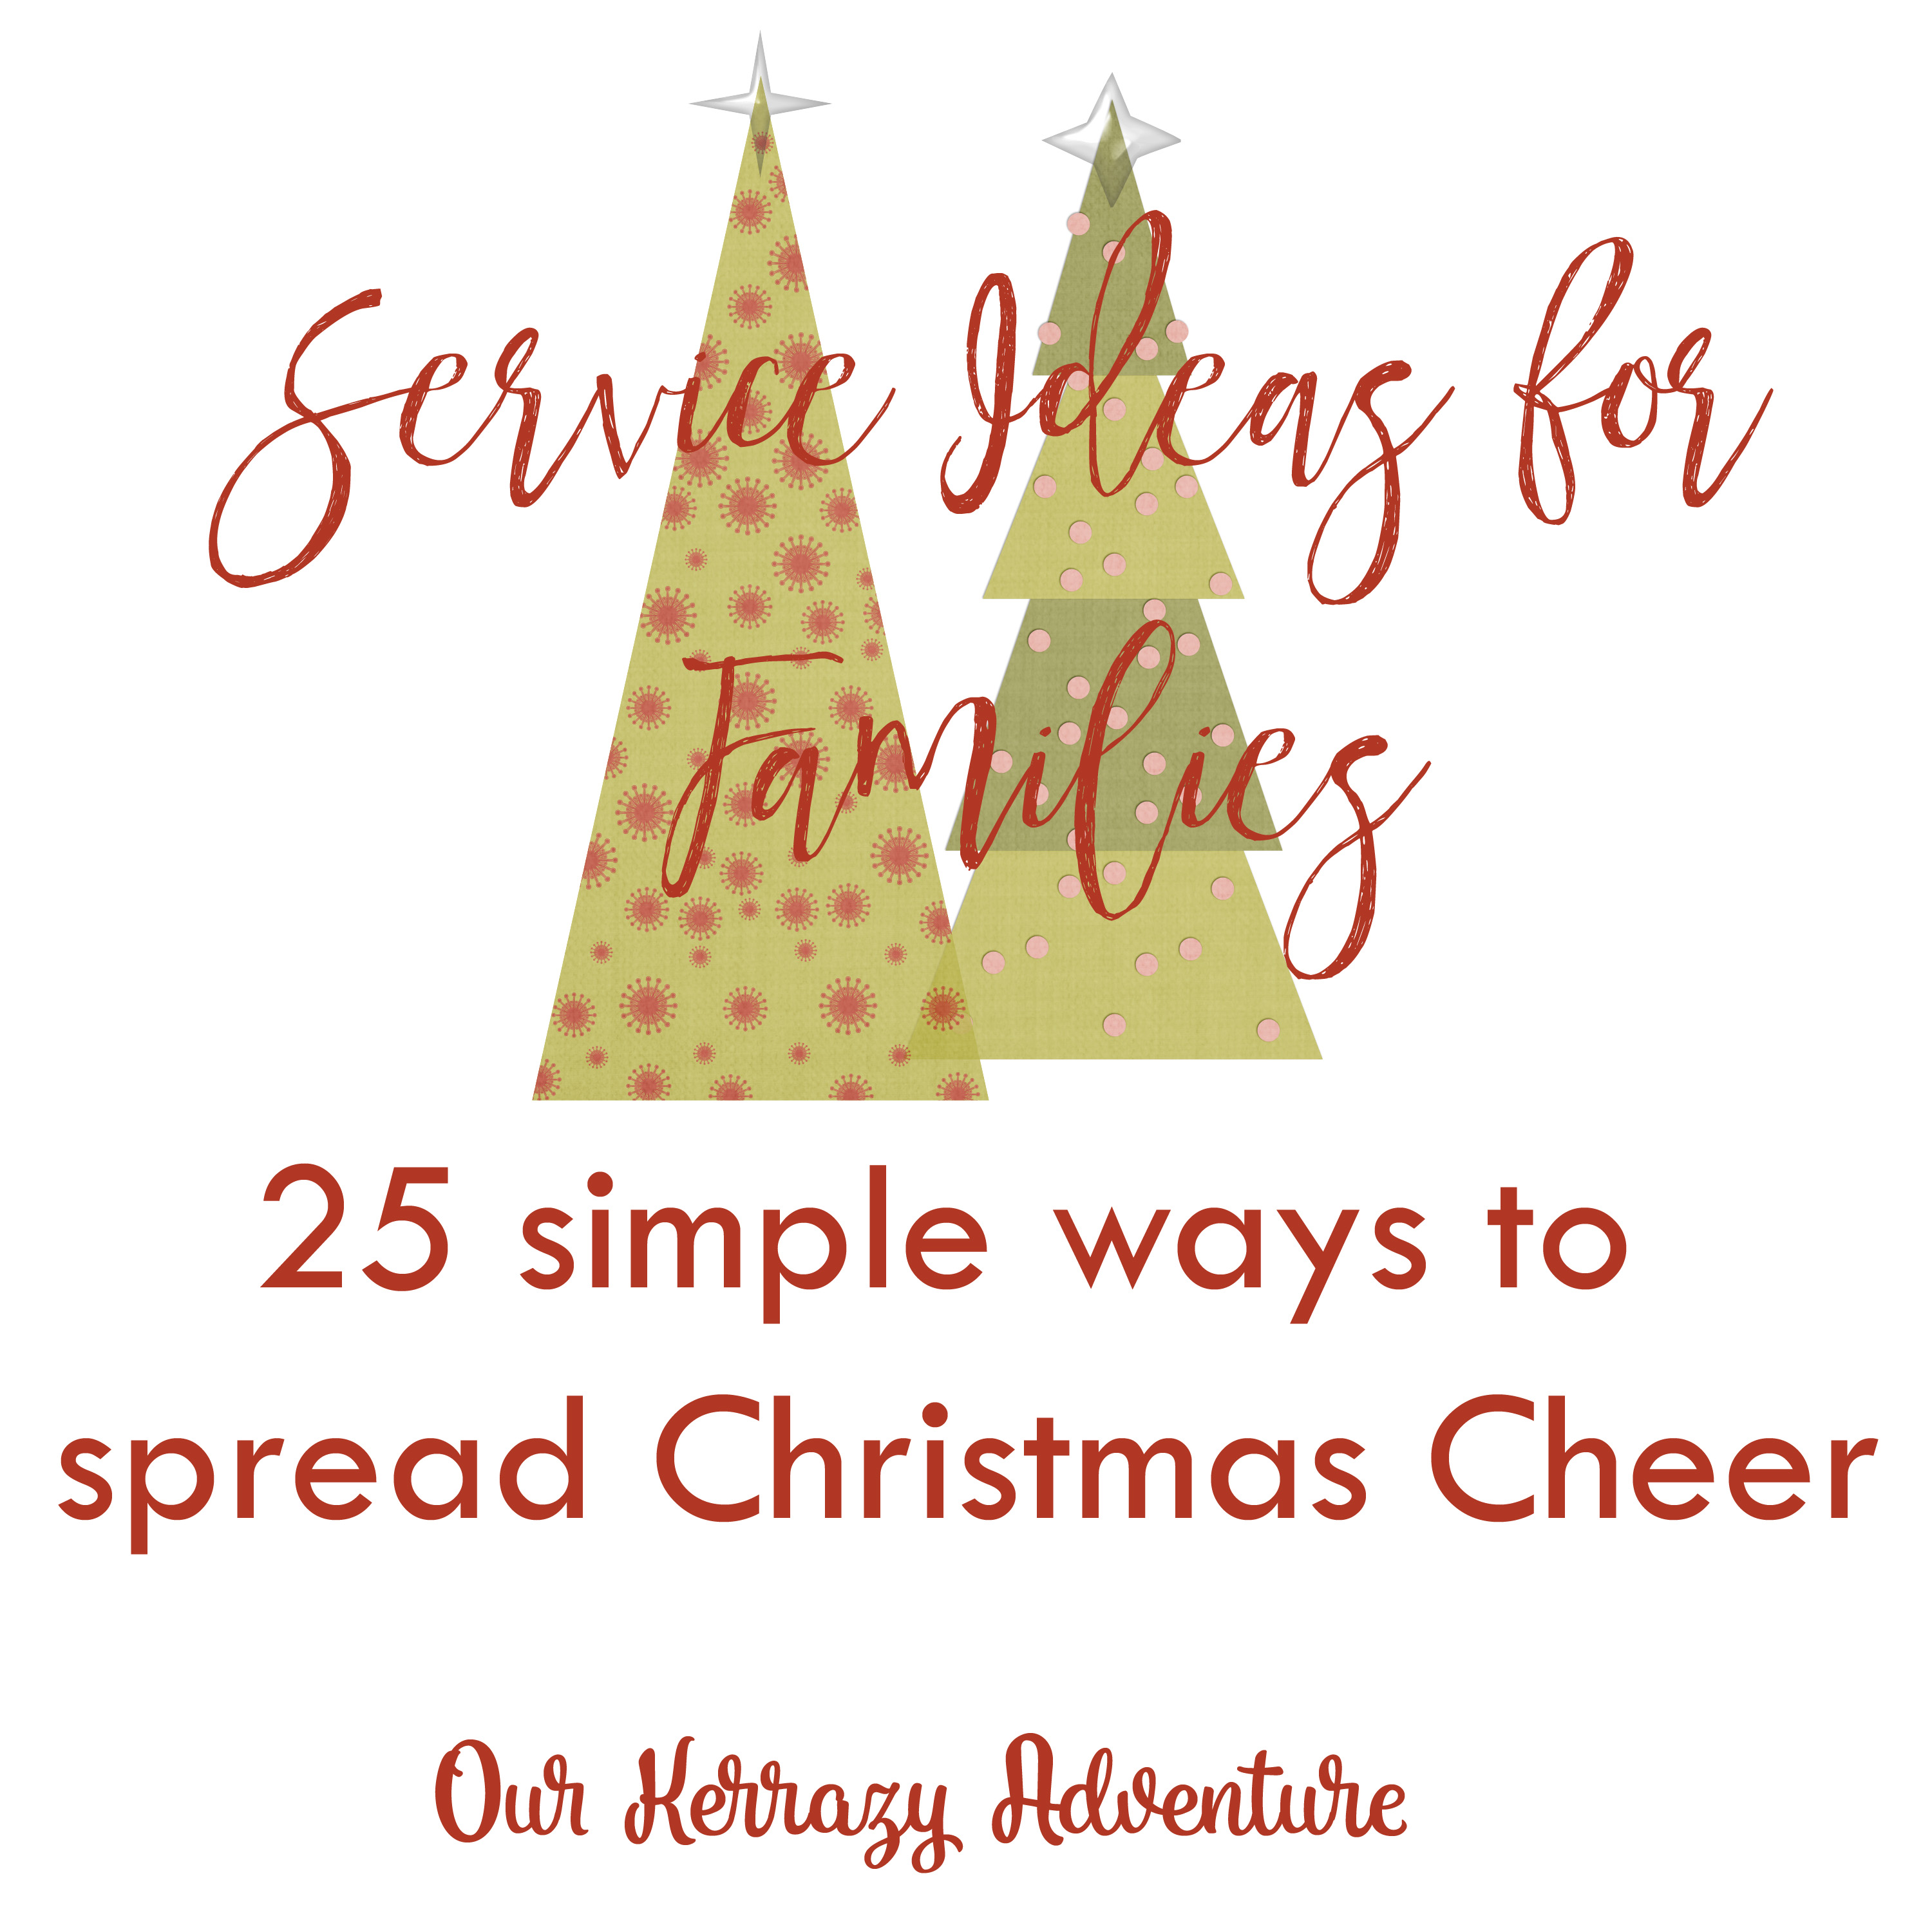 service-ideas-for-families-spreading-christmas-cheer-light-the-world ...